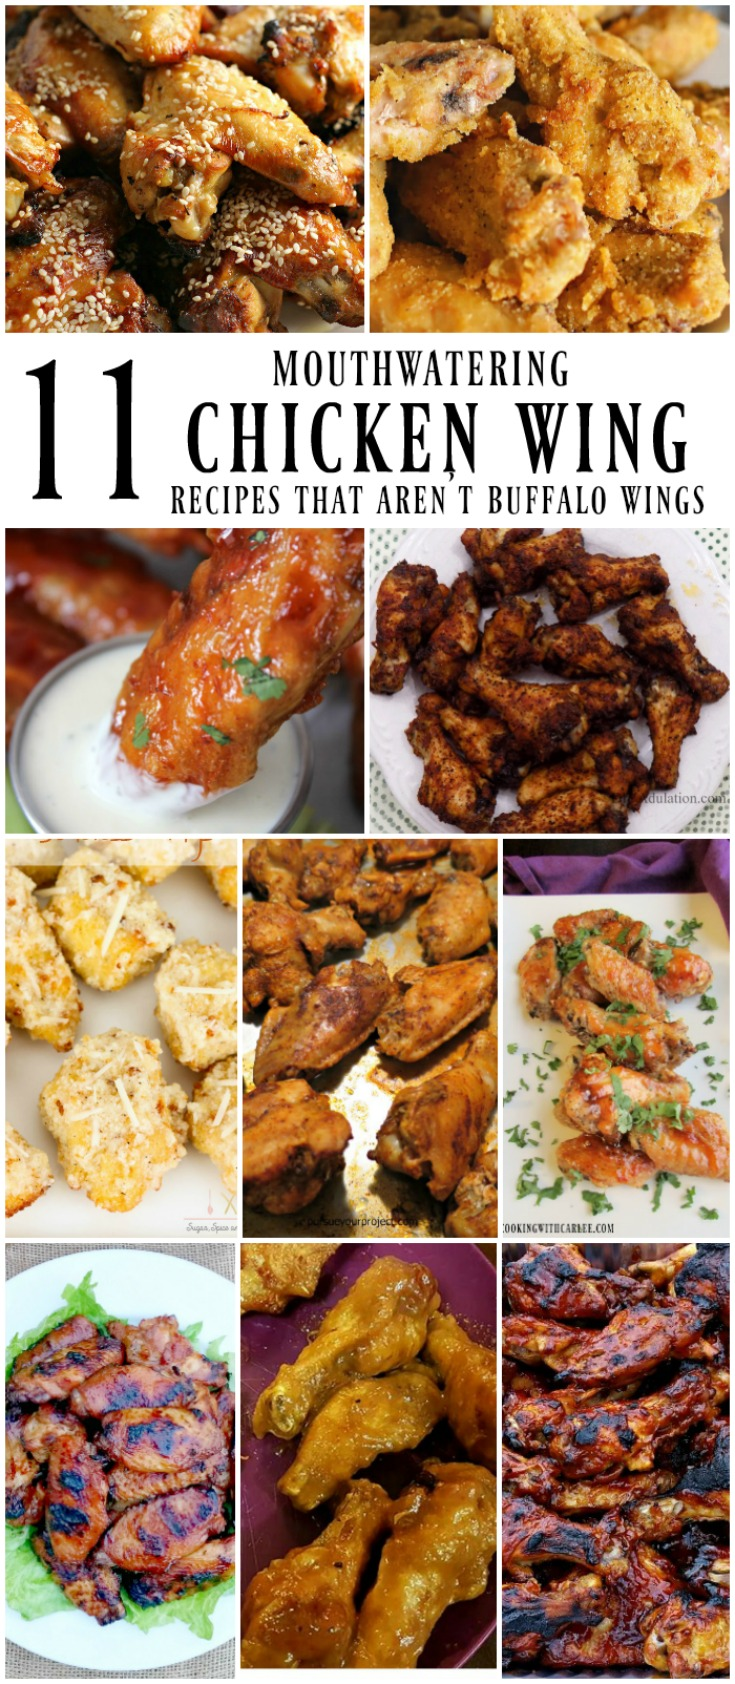 Mouthwatering Chicken Wing Recipes